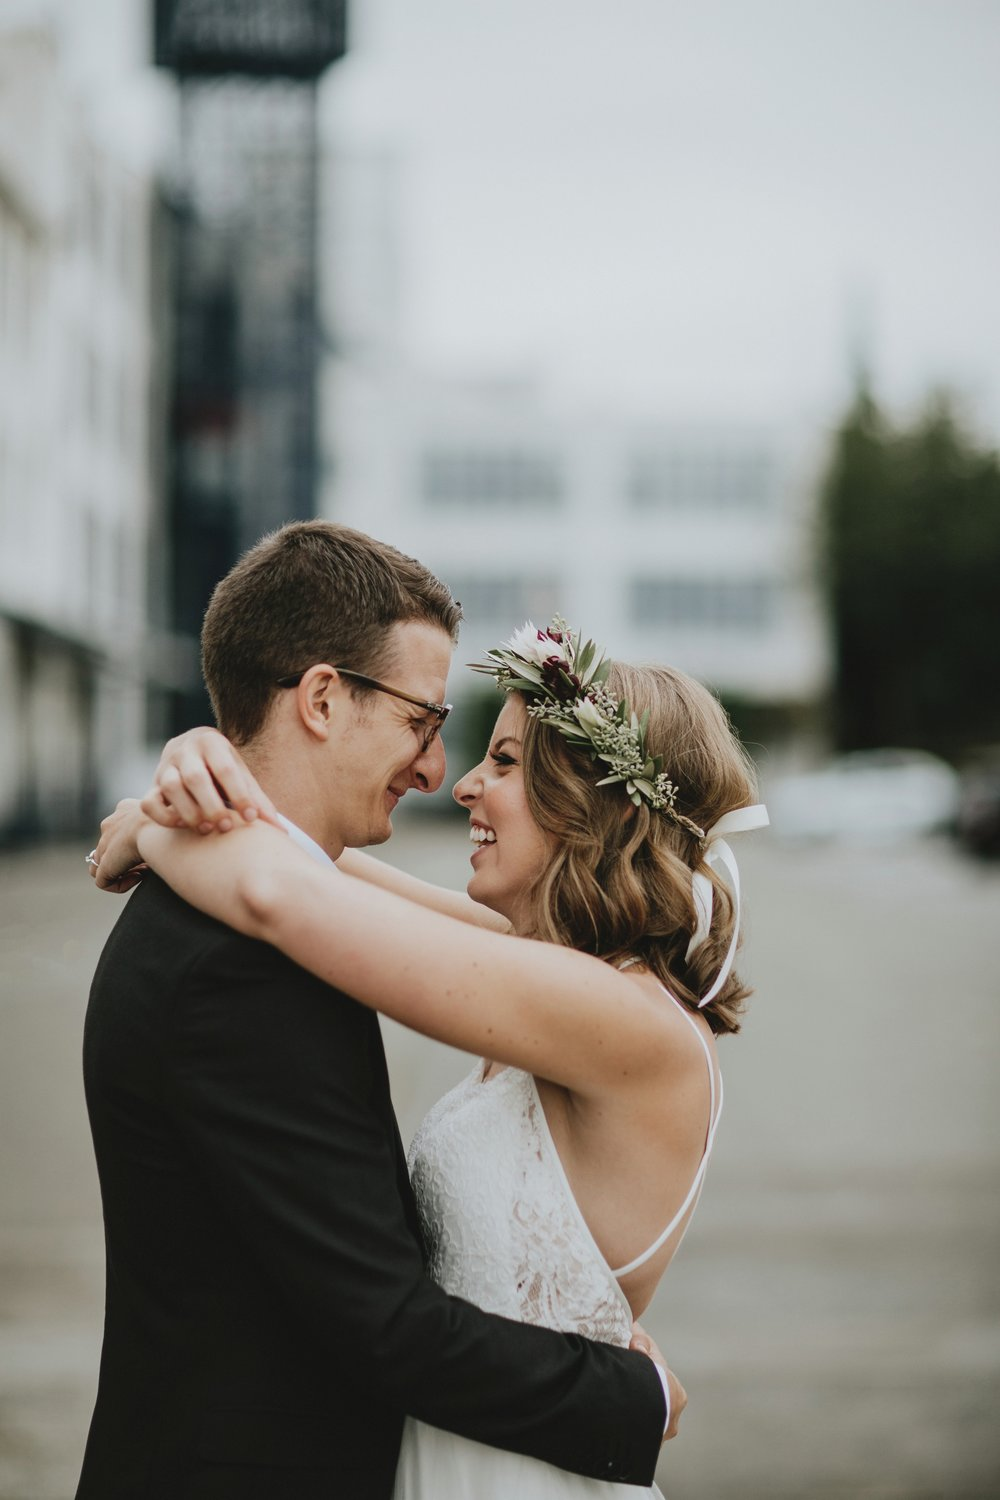 danaea_li_photography_Kaitlyn_Tom_Gastown_Wedding_0052.jpg